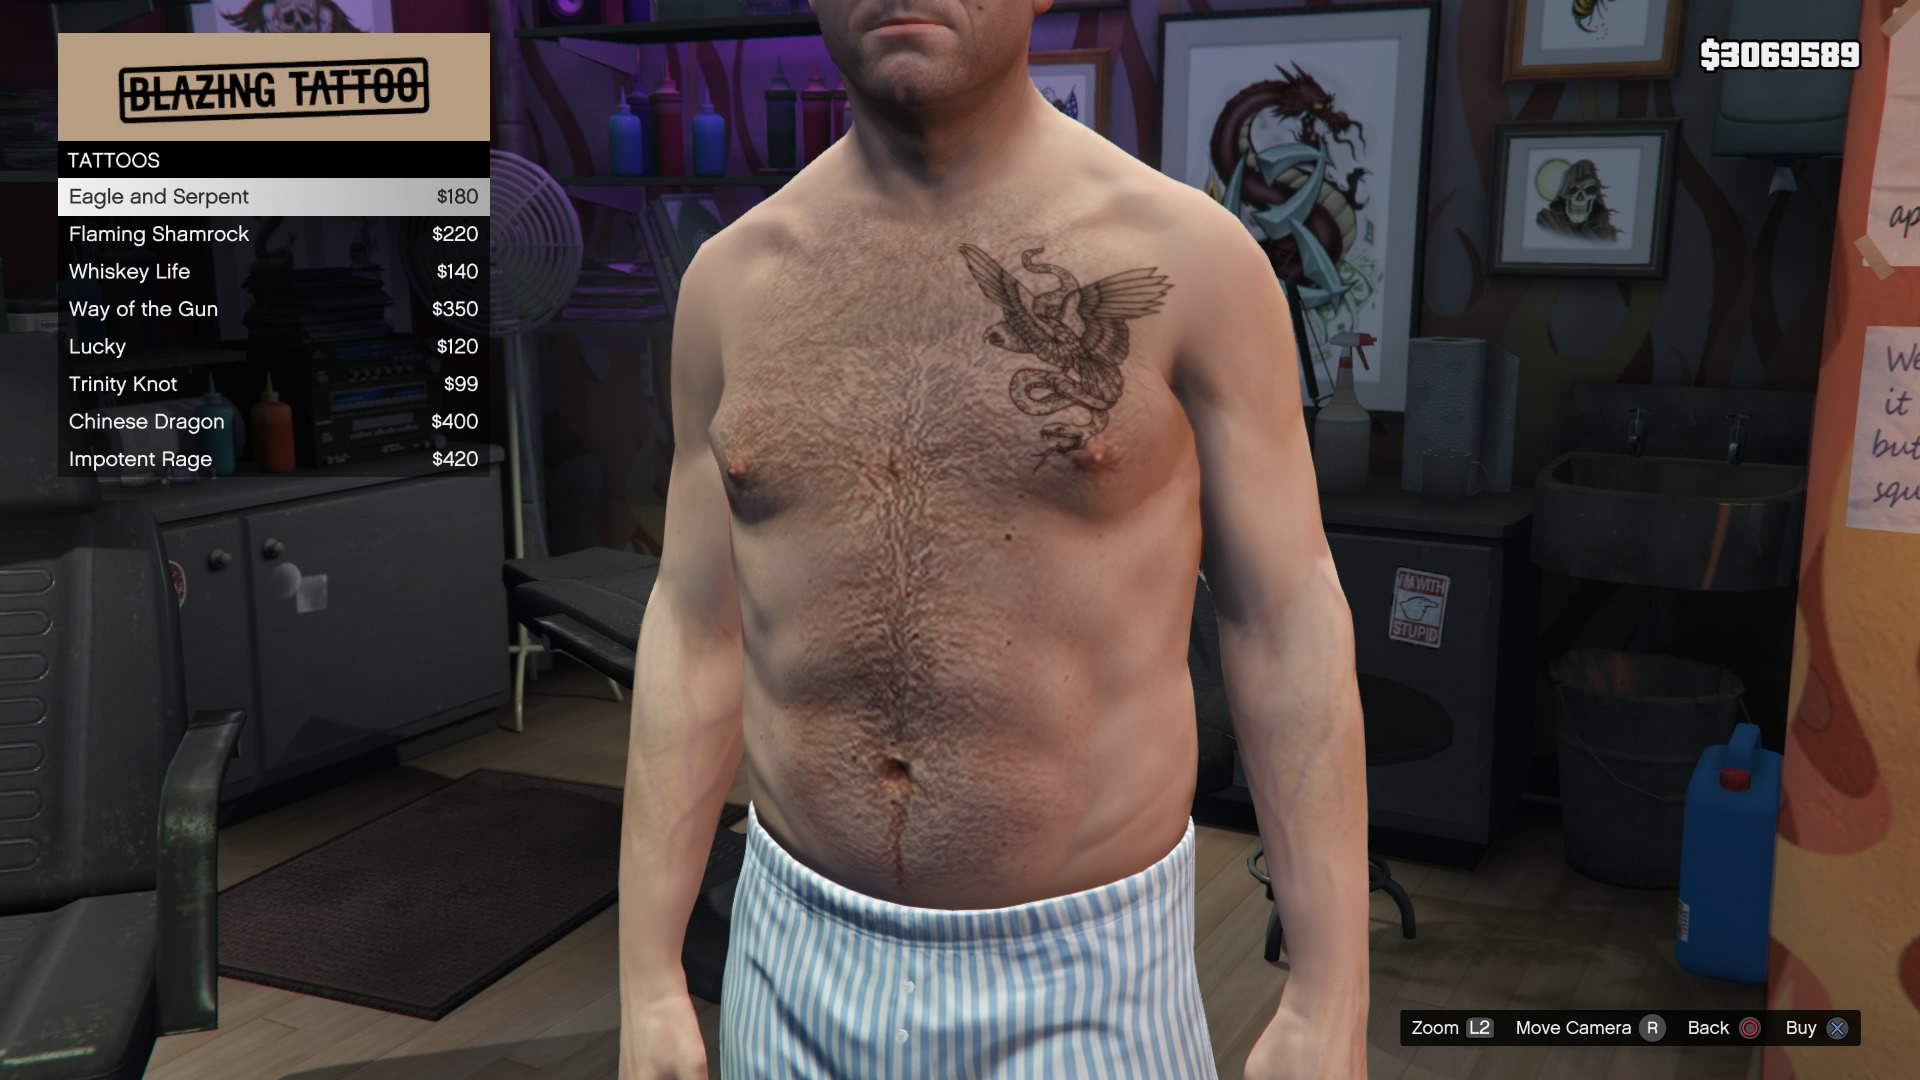 Tattoo Parlors Gta V Gta Wiki Fandom Powered By Wikia